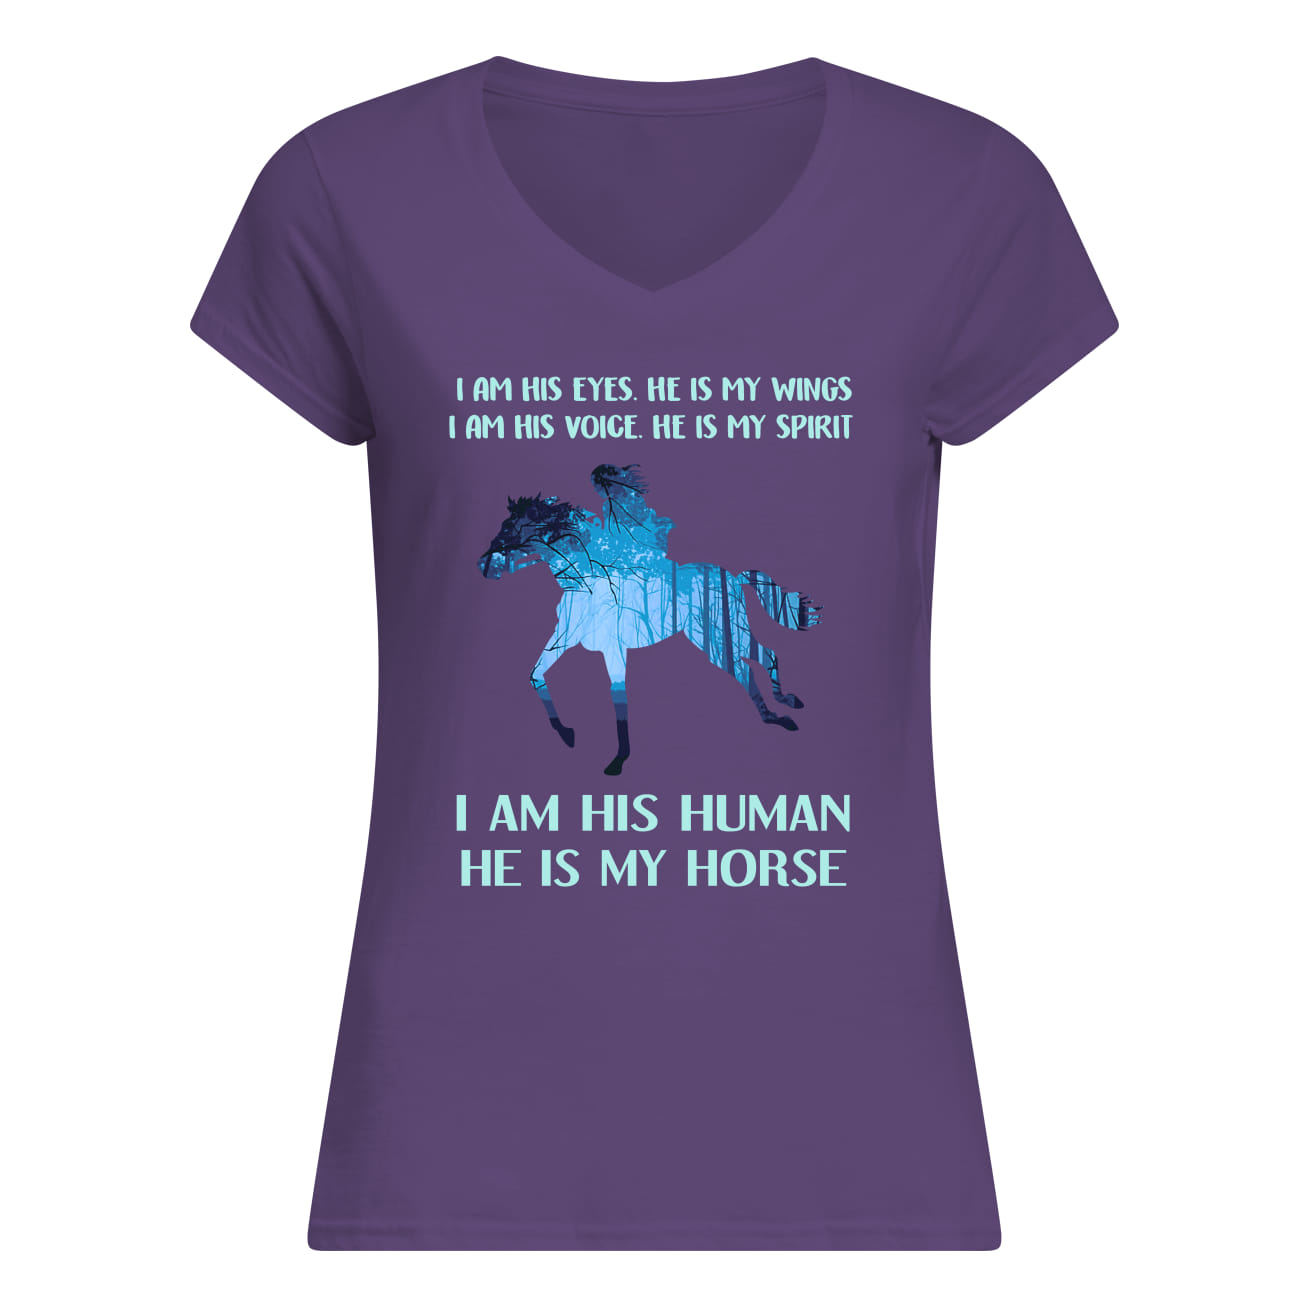 I am his eyes he is my wings I am his voice he is my spirit I am his human he is my horse lady v-neck